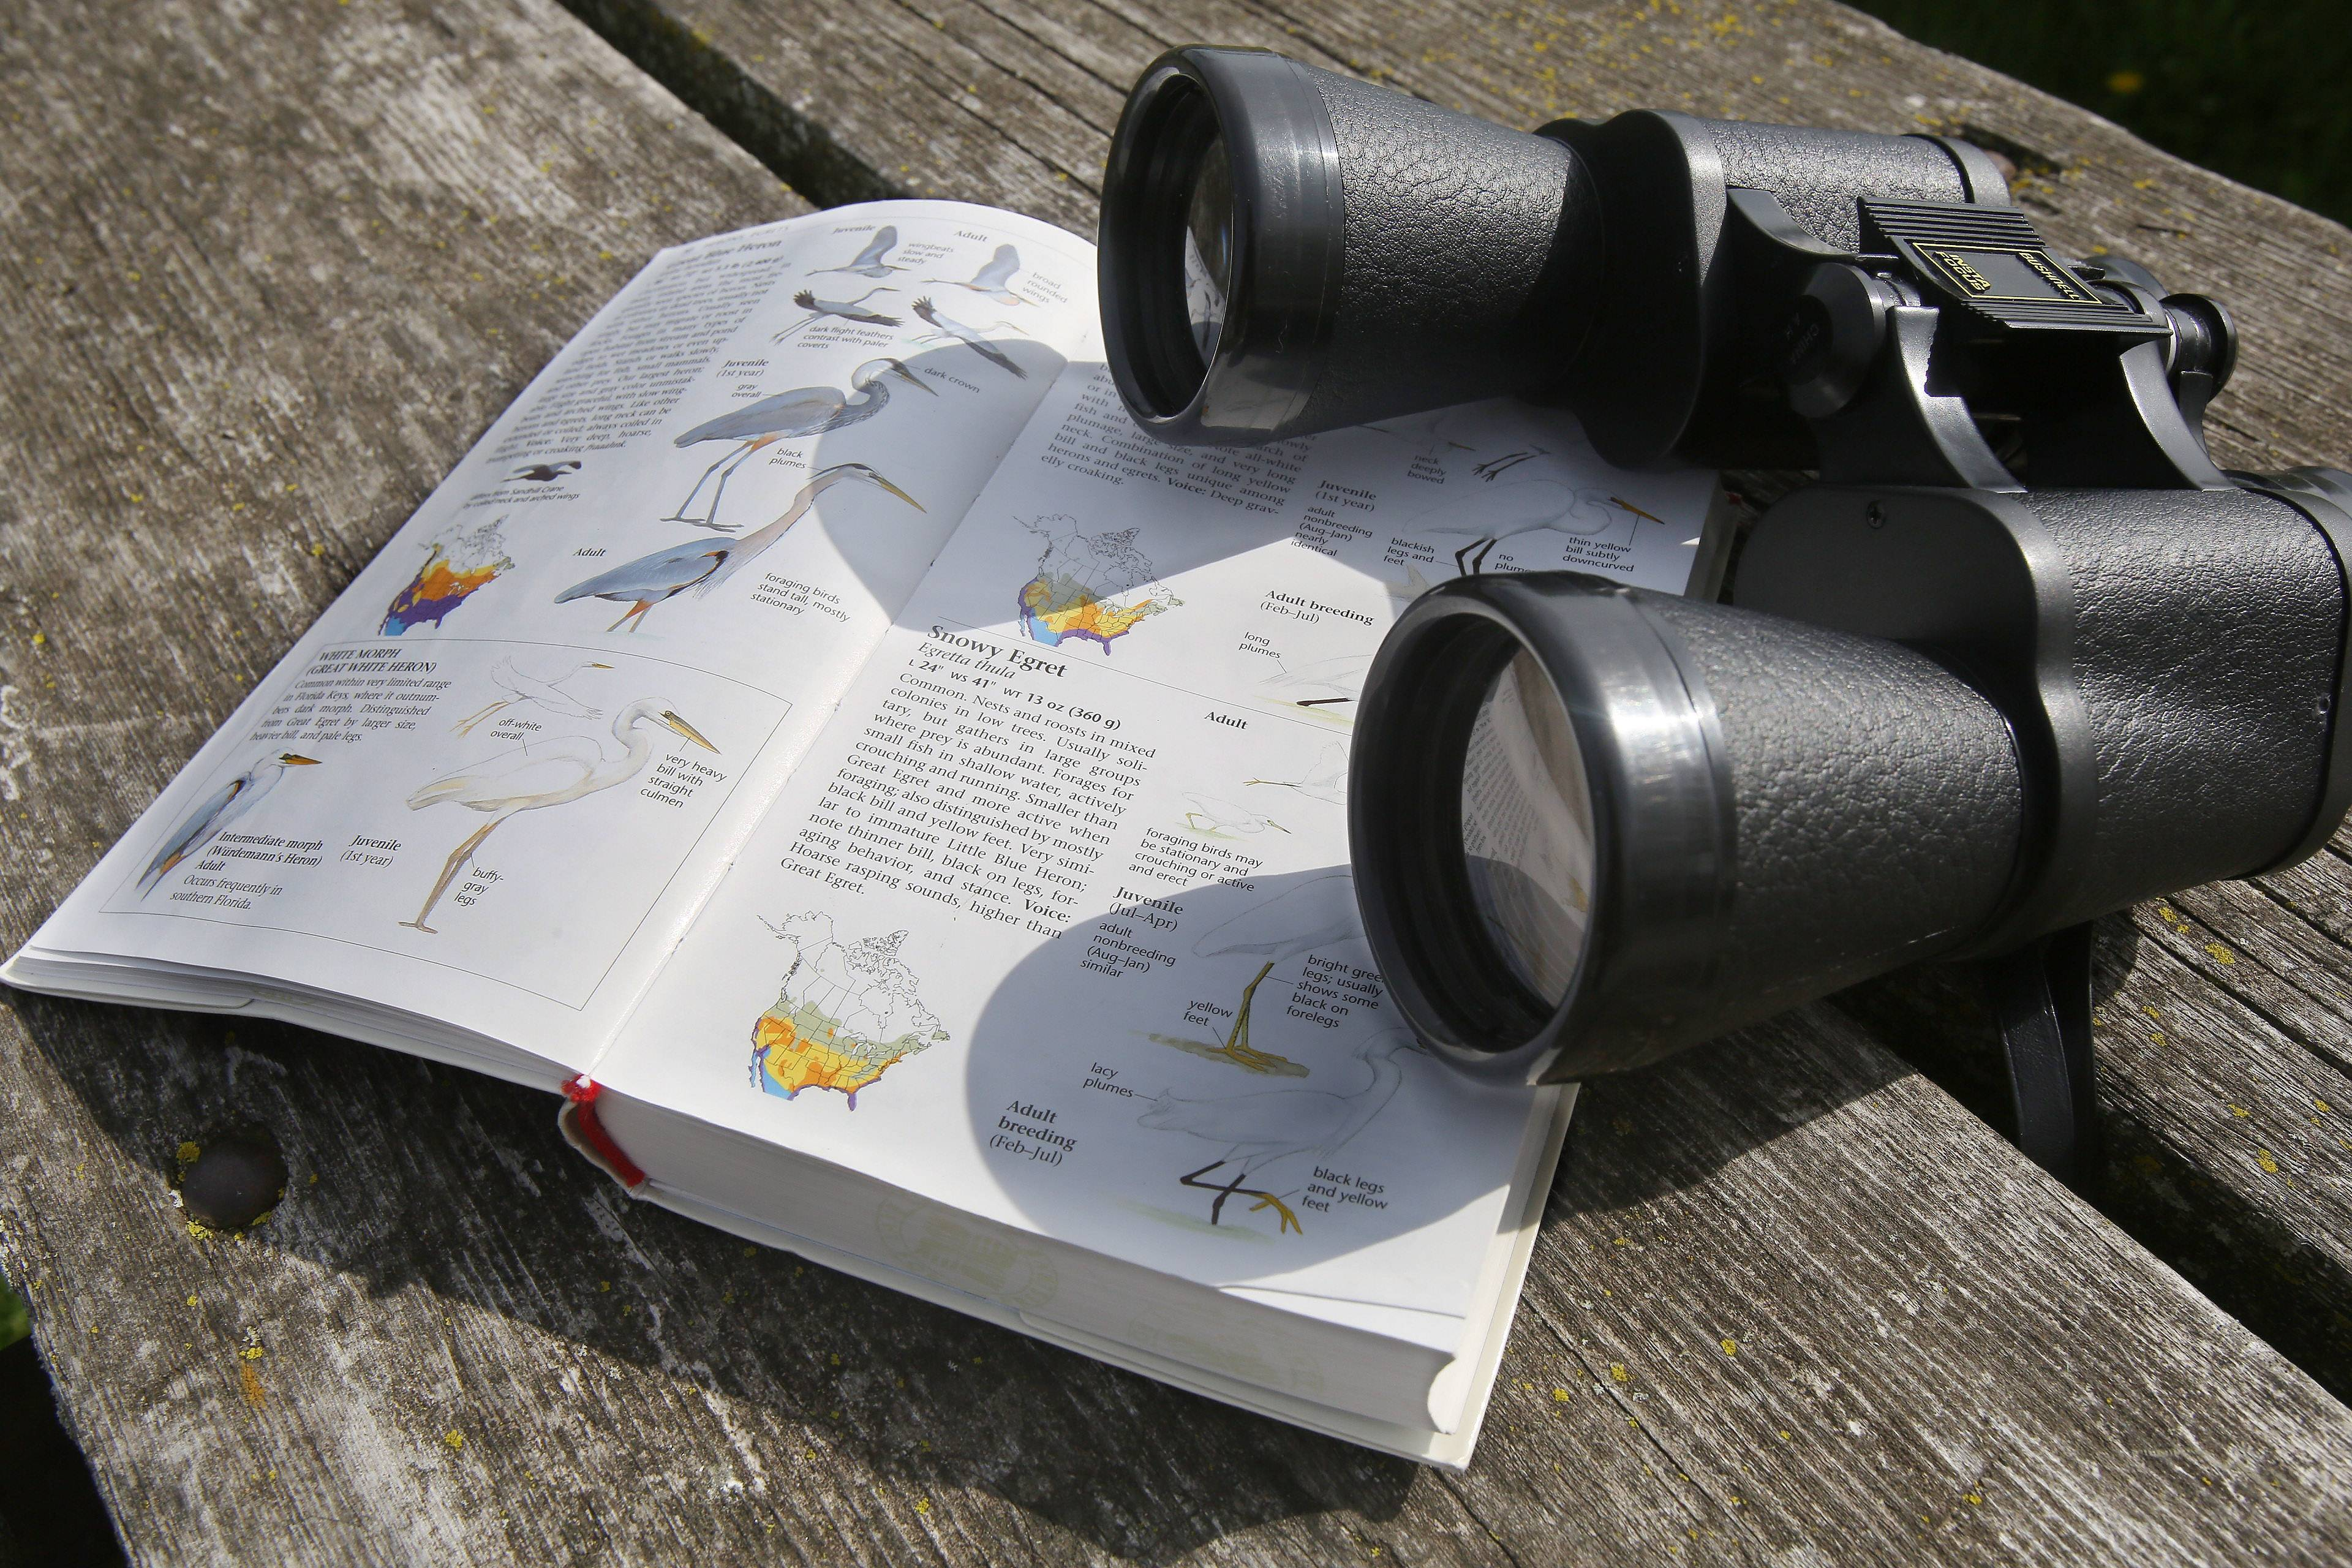 Bird books and binoculars are necessary tools for Nowak.